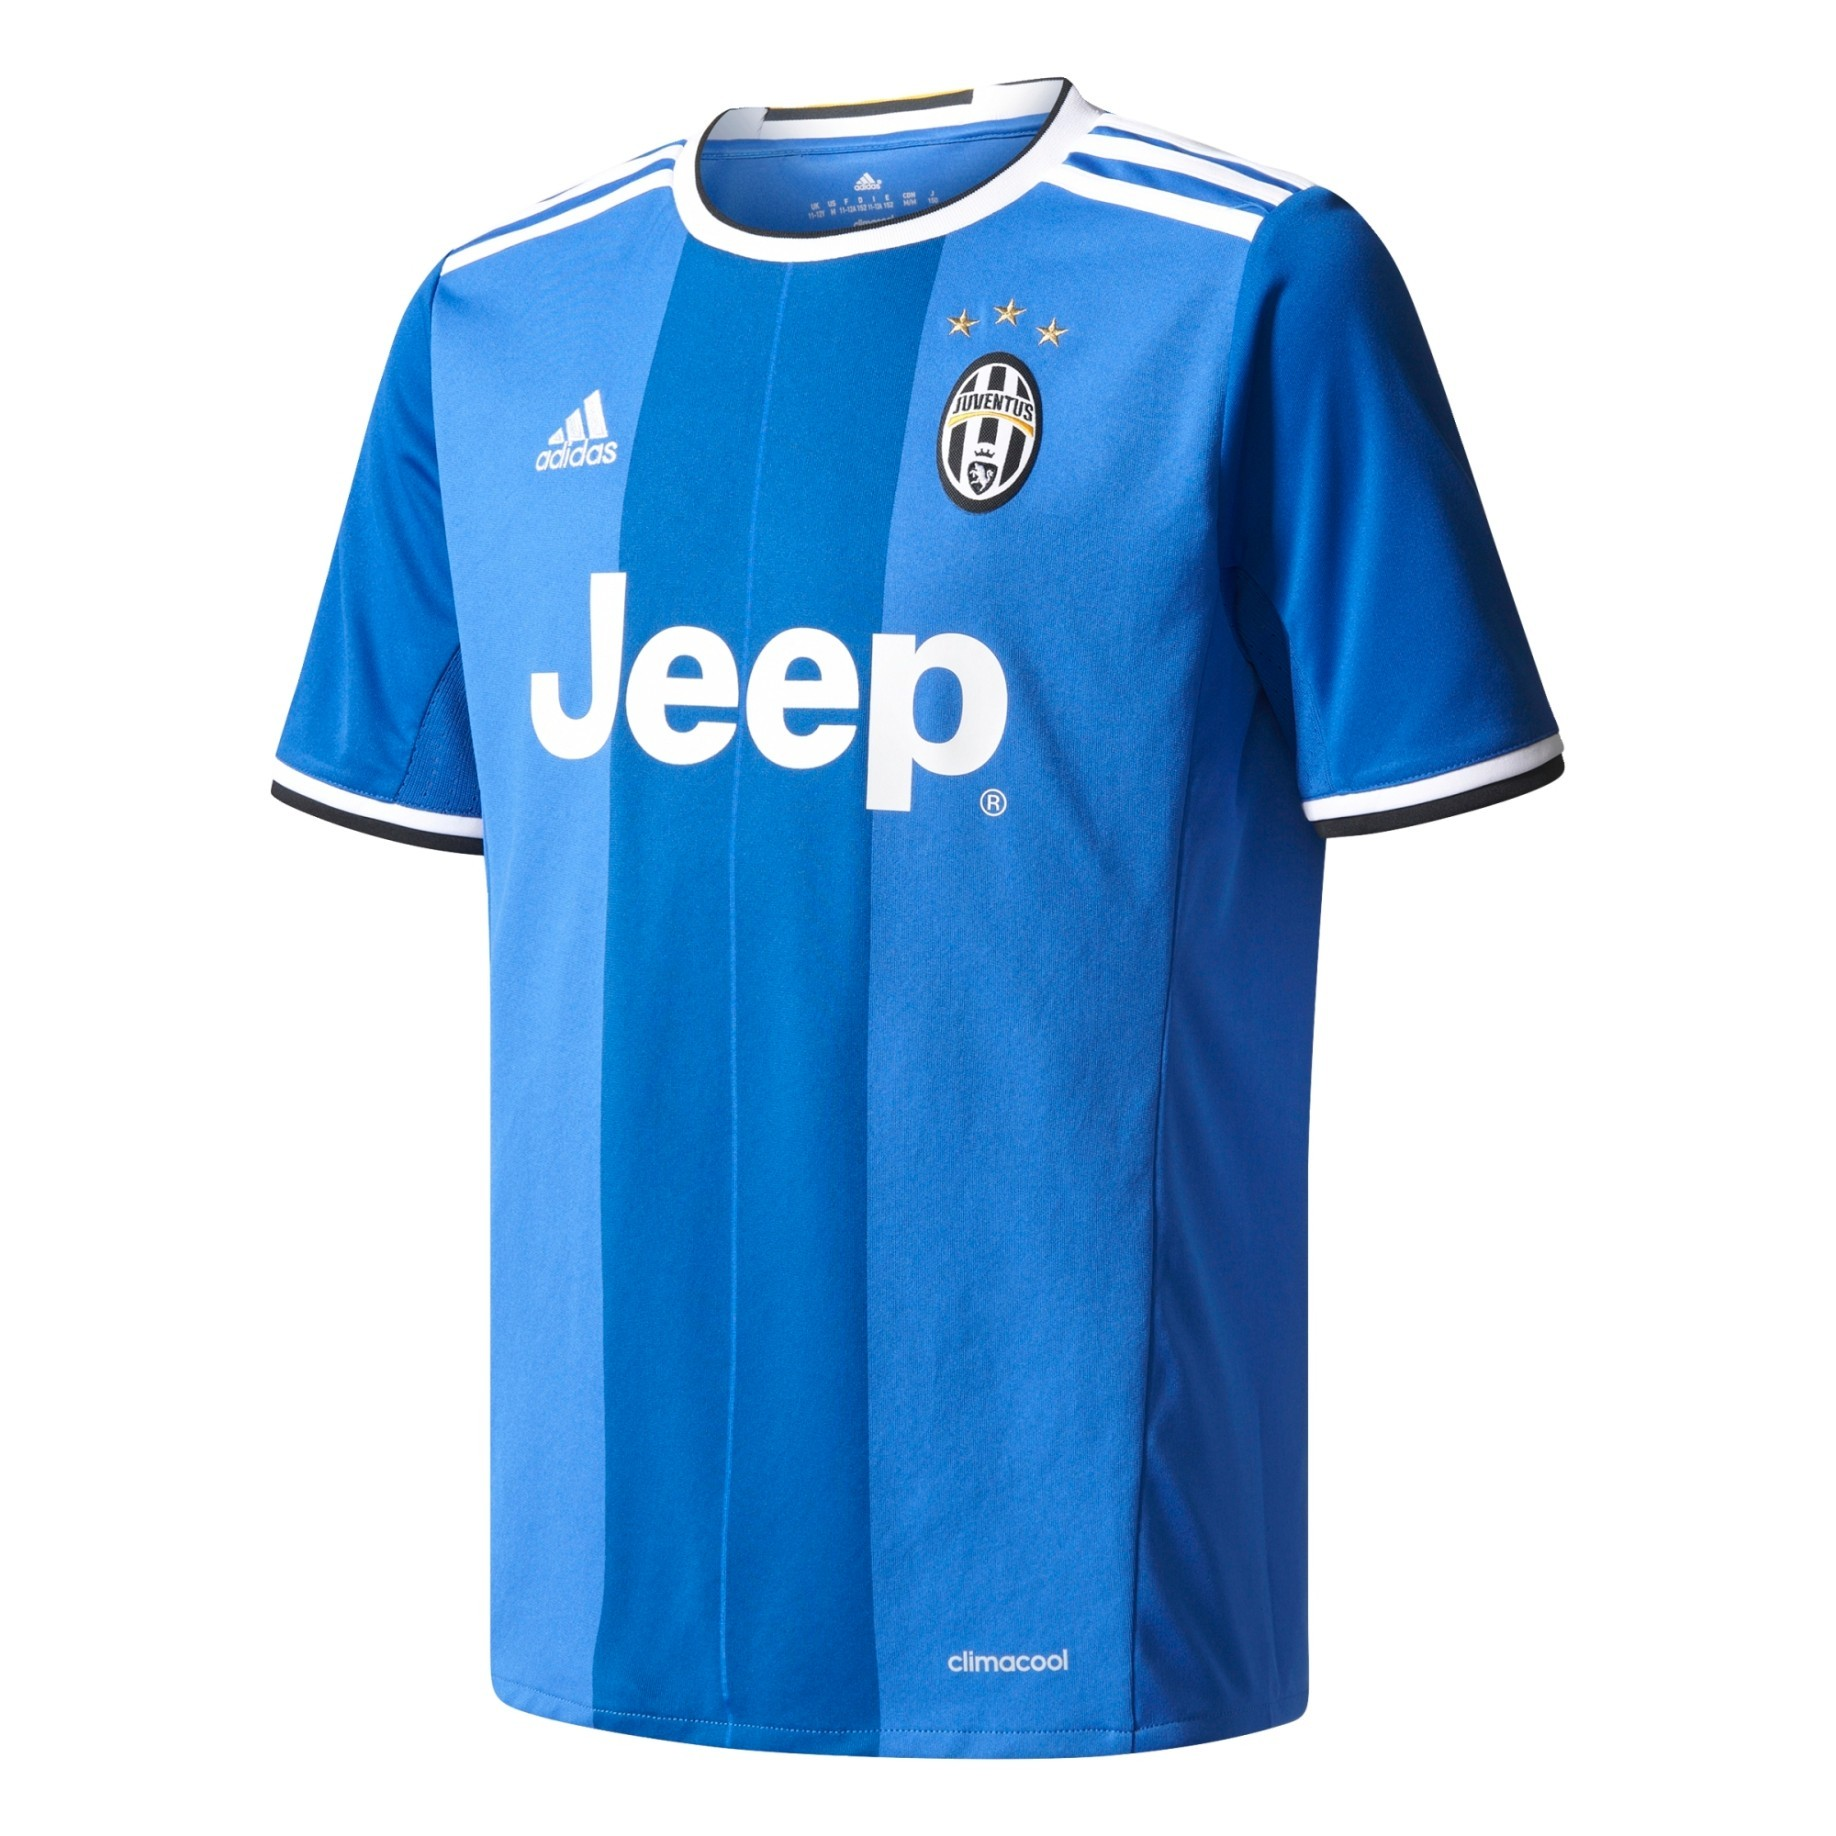 buy online 2b5ea cc12e Jersey Juve away jr 16/17